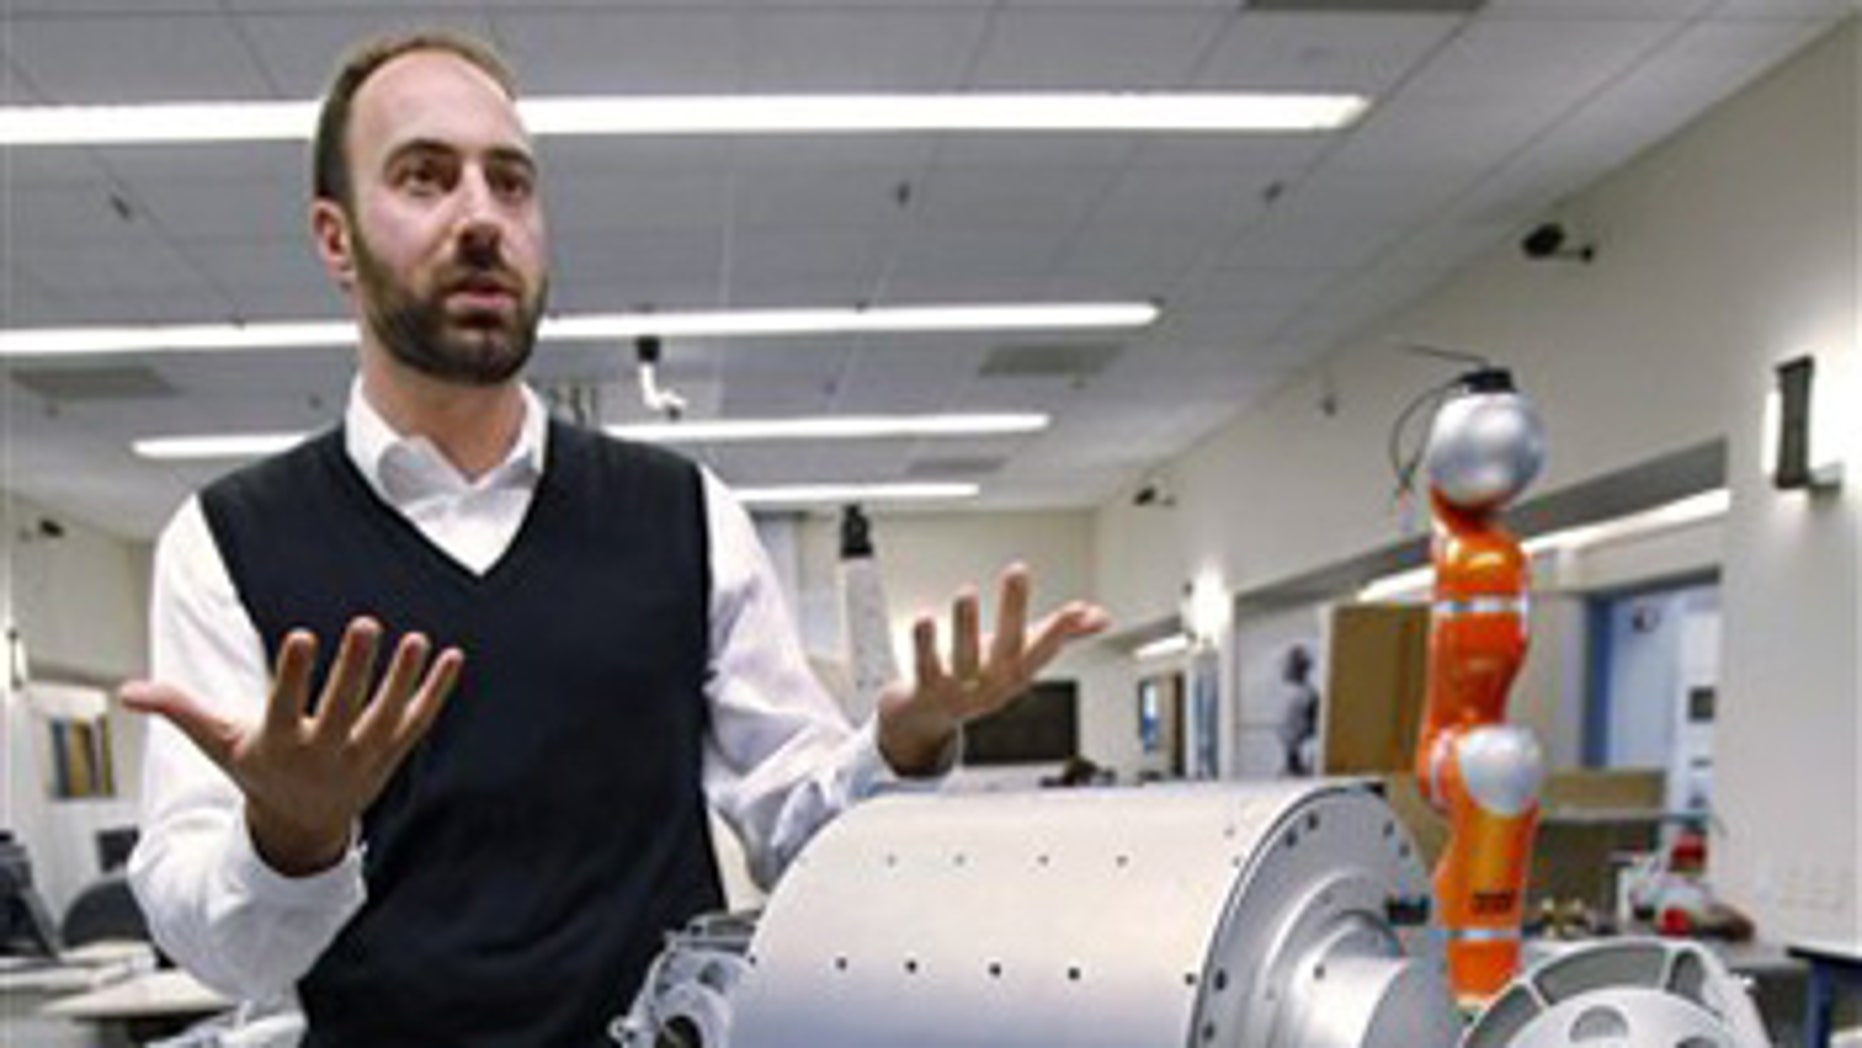 Nov. 24: Ryan Calo stands next to a robot that is being built for medical applications at Stanford University's Artificial Intelligence Laboratory.